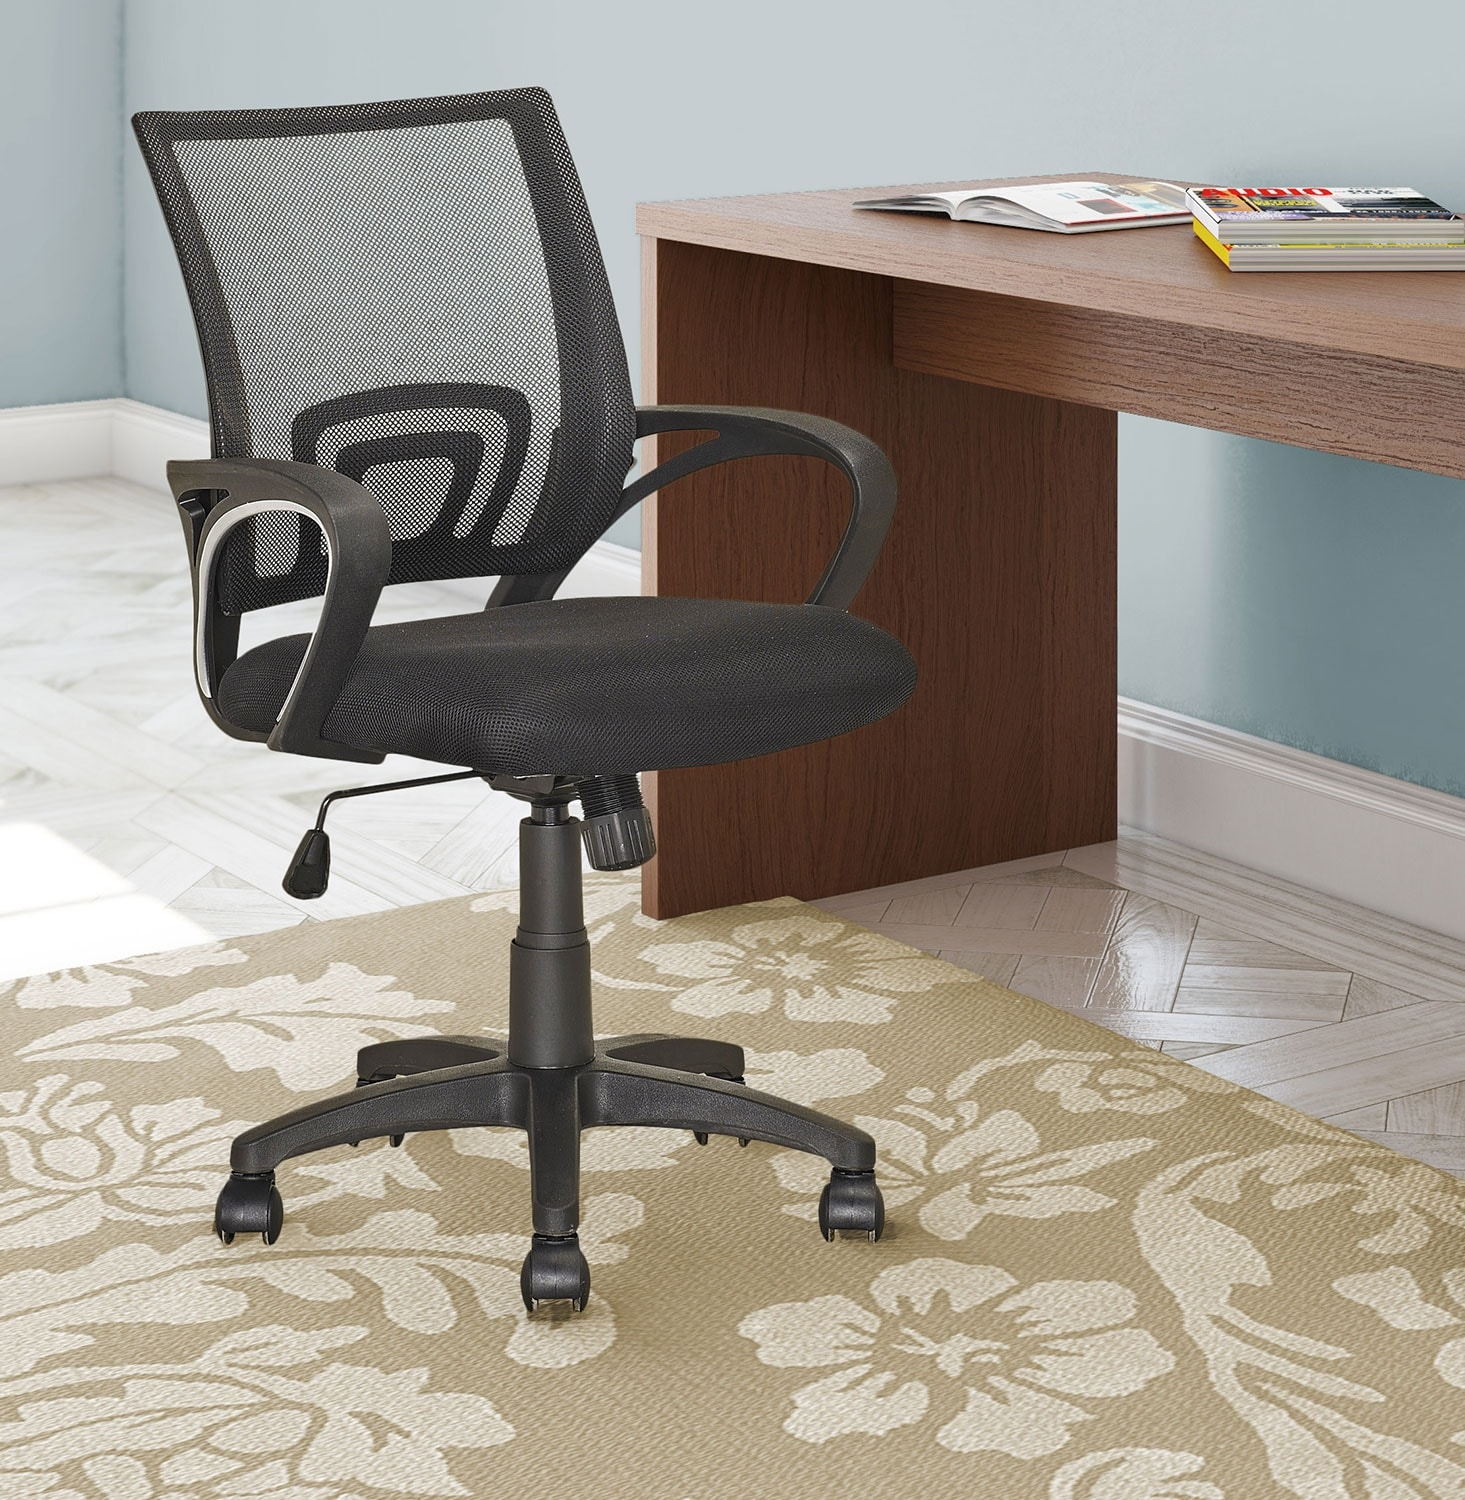 Memphis soft fabric office chair with back support the brick